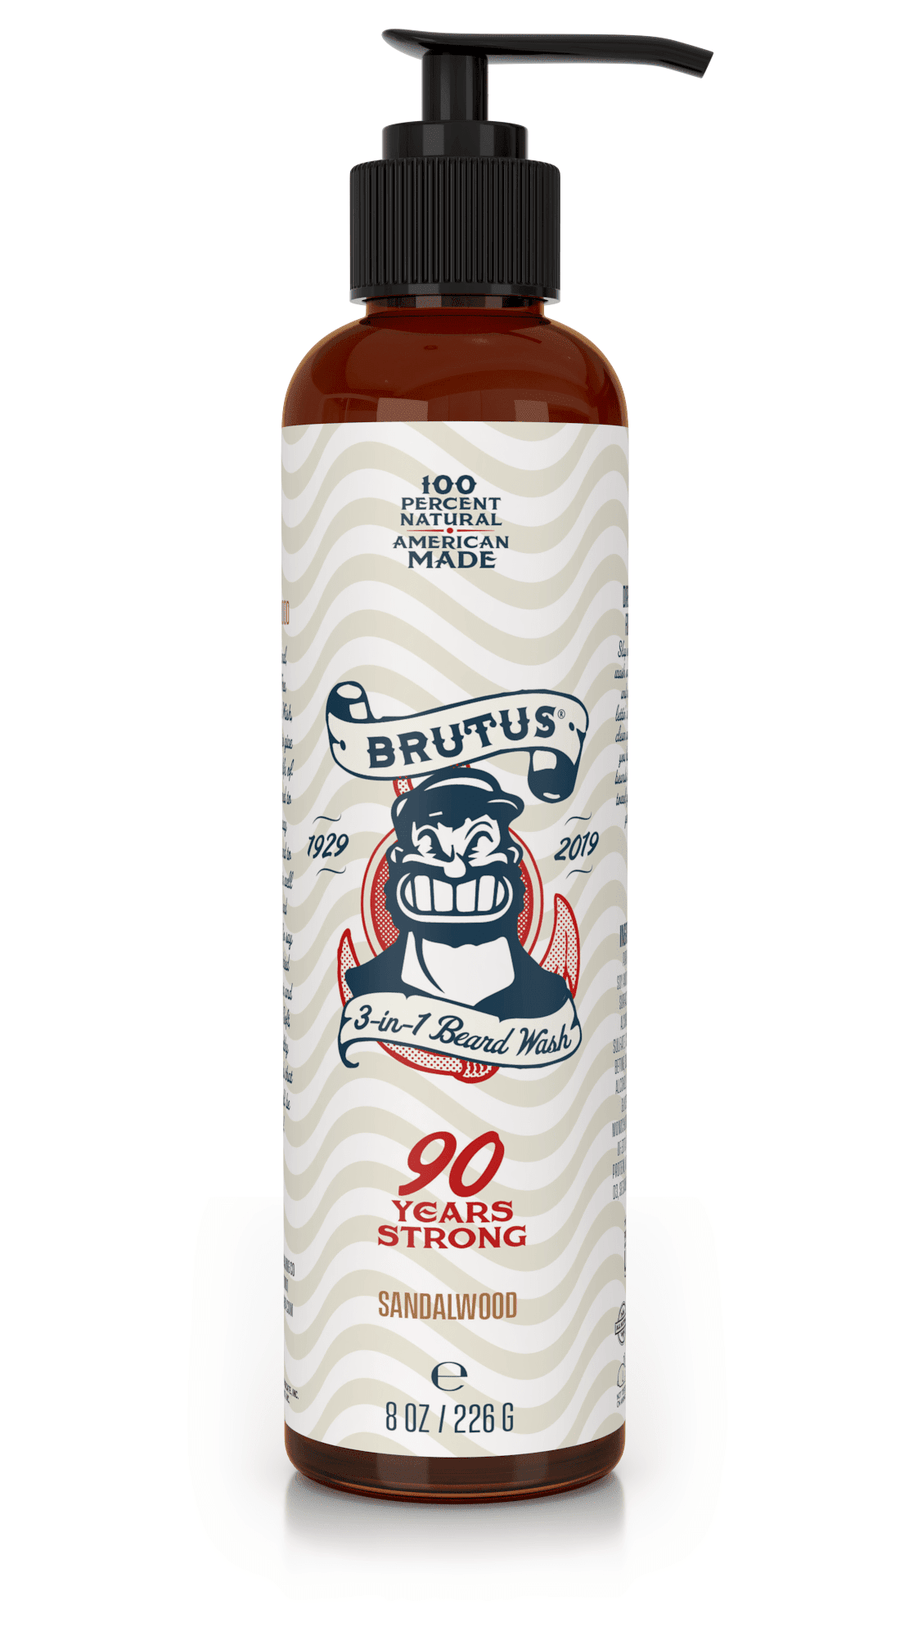 Popeye Shave Company - BRUTUS 3 in 1 Beard Wash